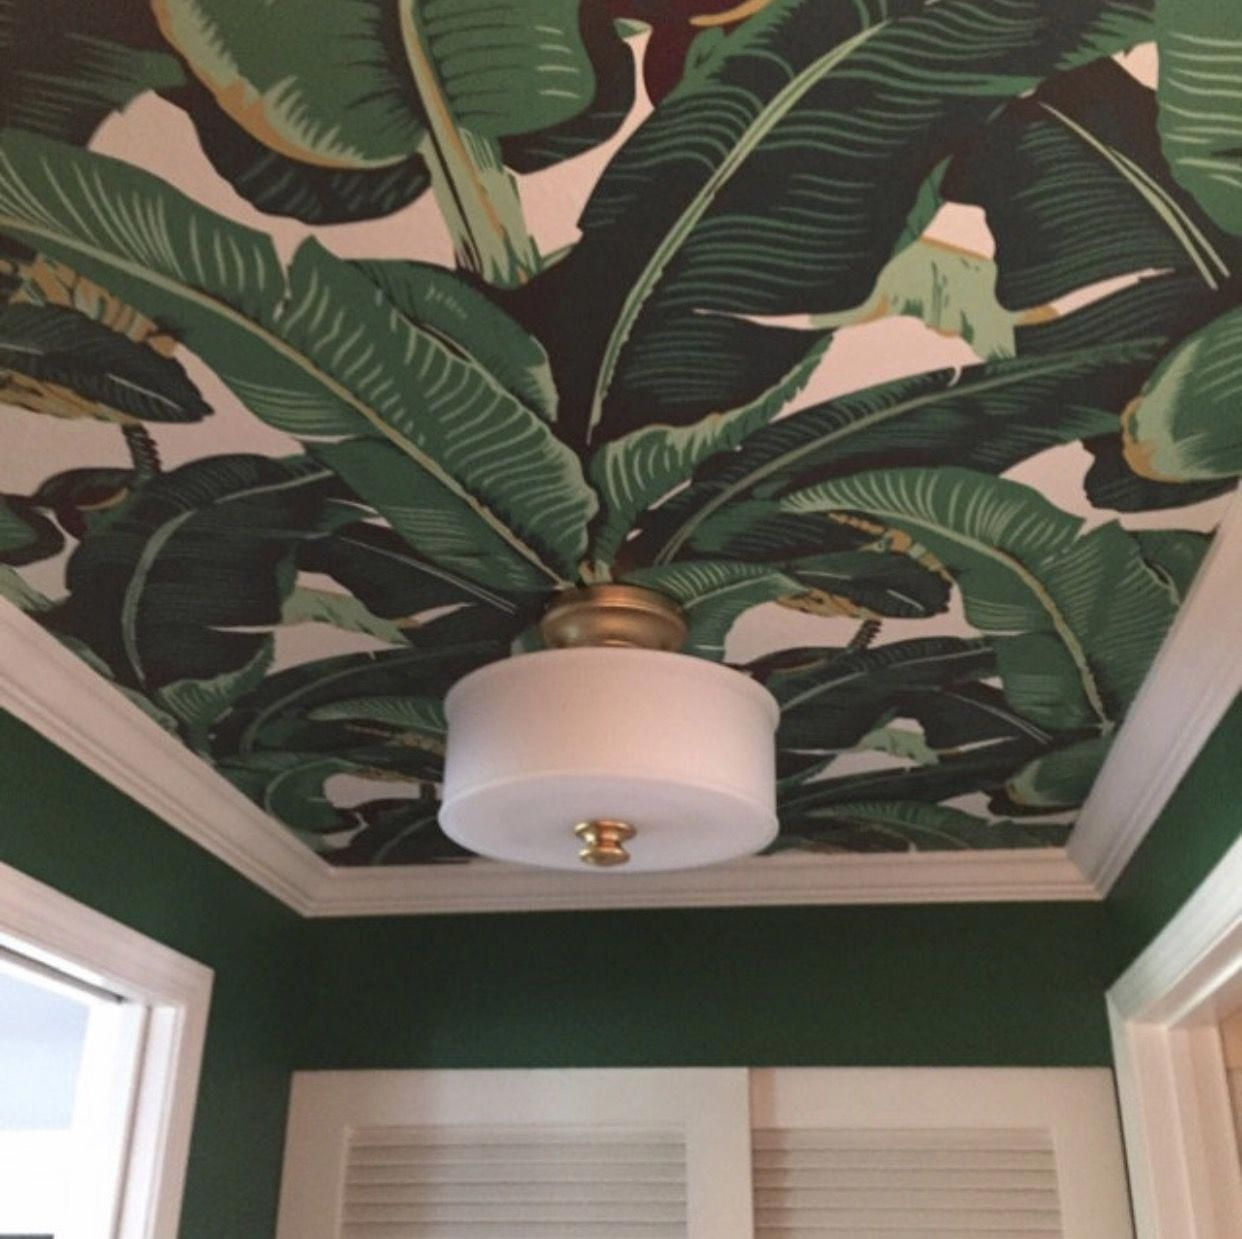 Most Beautiful Banana Leaf Removable Wallpaper On This Ceiling Bathroomtropicalwoods Leaf Wallpaper Palm Leaf Wallpaper Wallpaper Ceiling